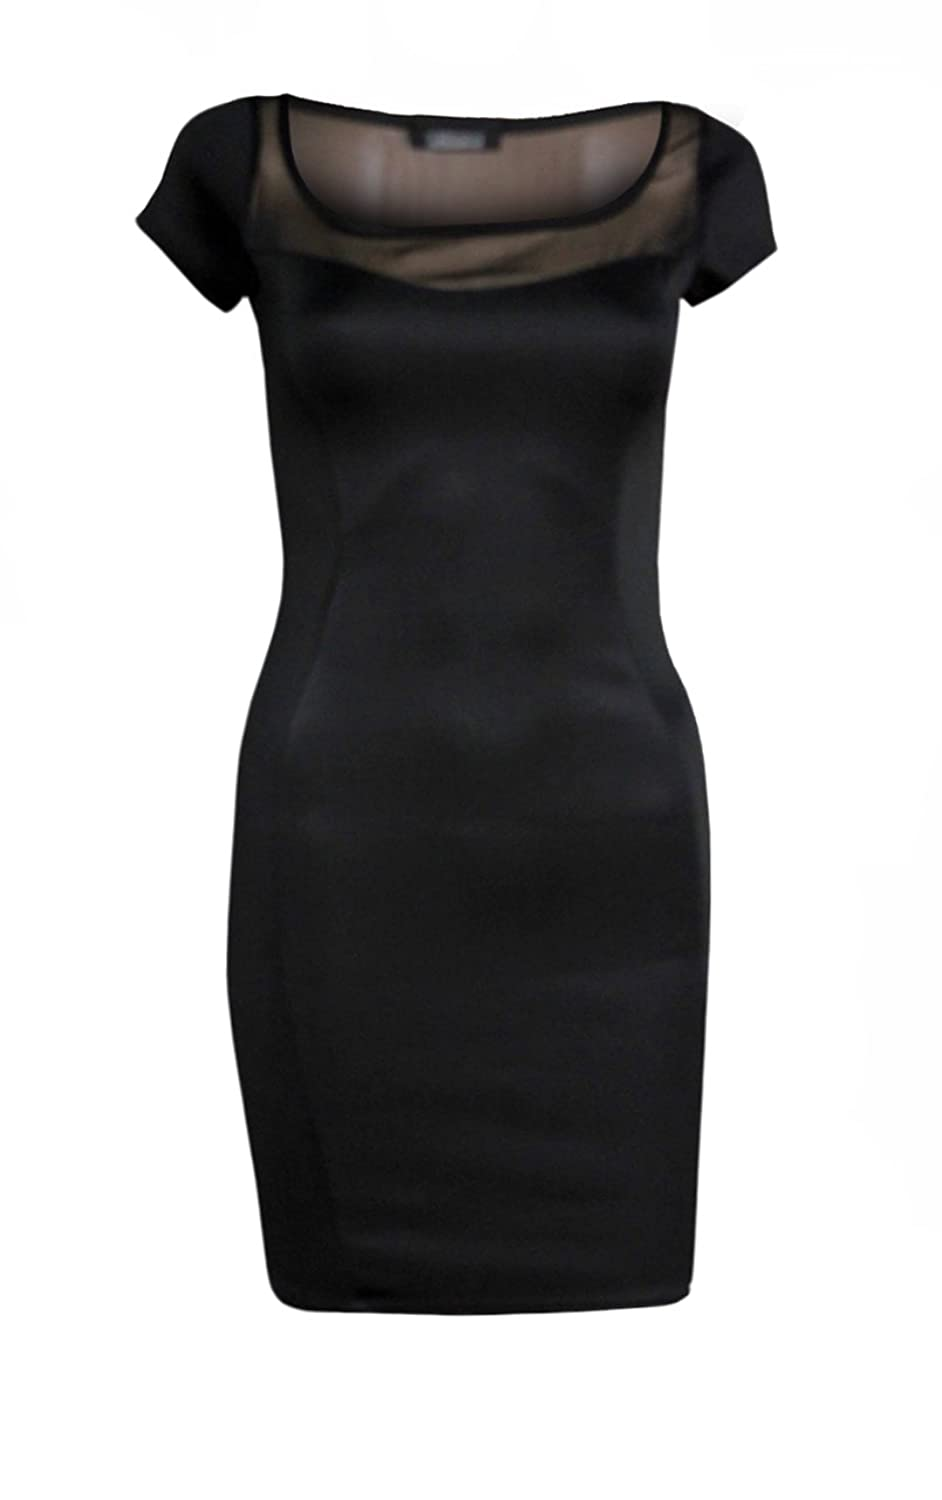 WOMENS HALLE CAP SLEEVED MESH TOP BODYCON DRESS (MIA)